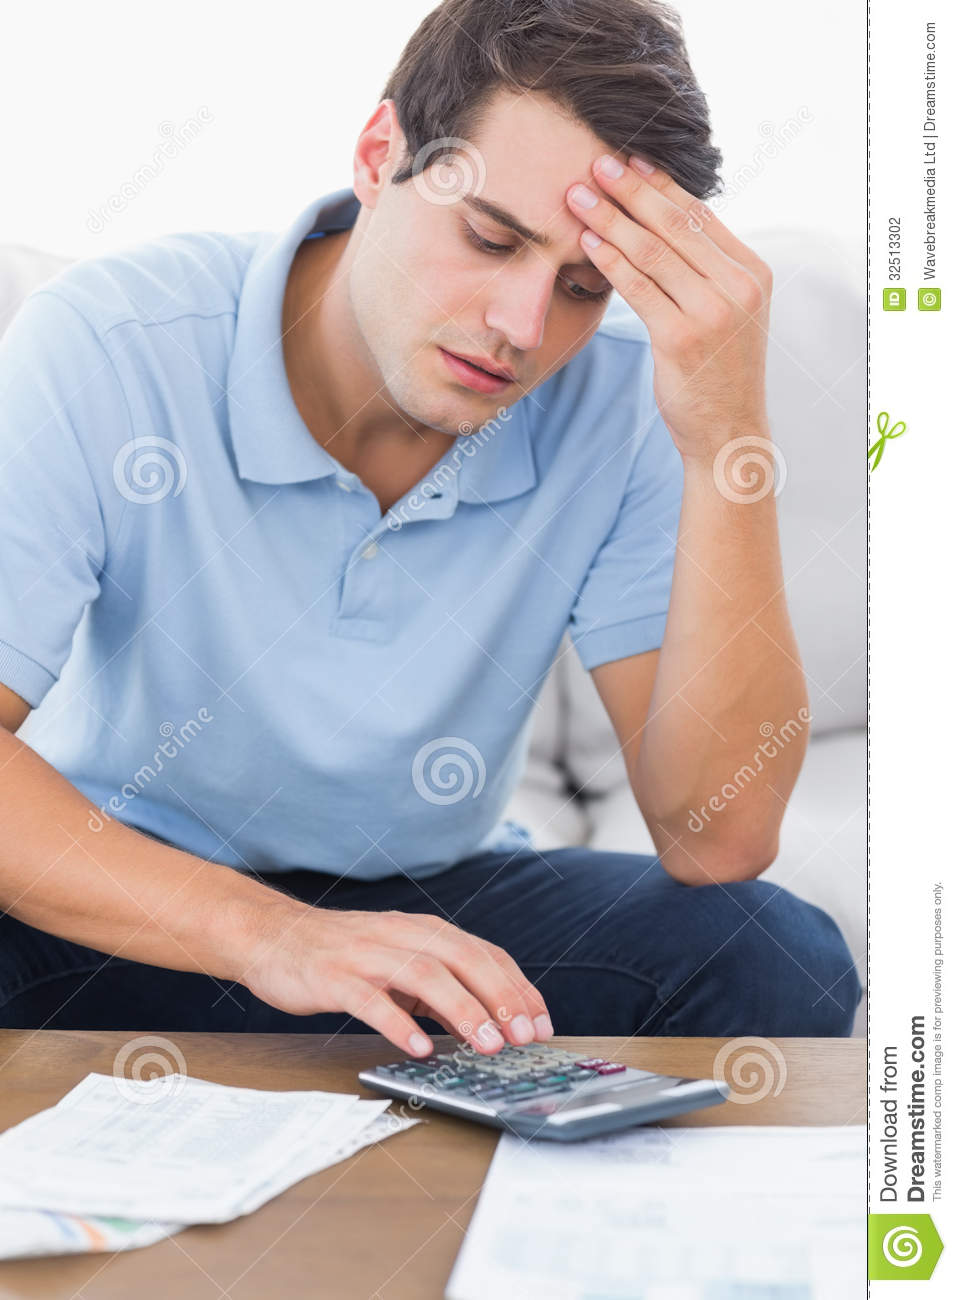 Man doing his accounts with a calculator